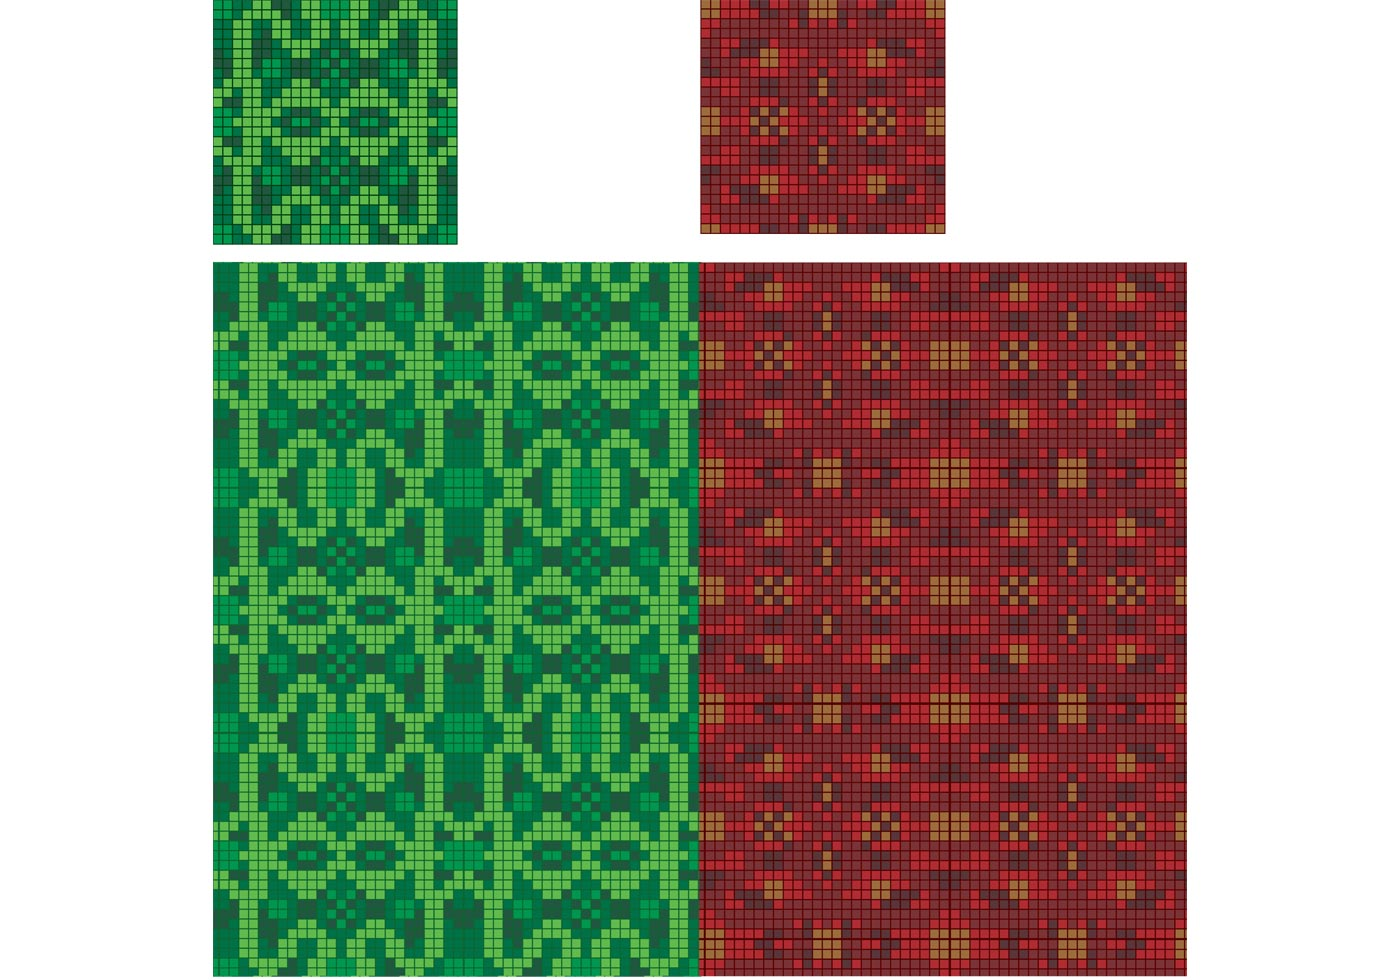 Fabric Tissue Kilt Red Green From Scotland Download Free